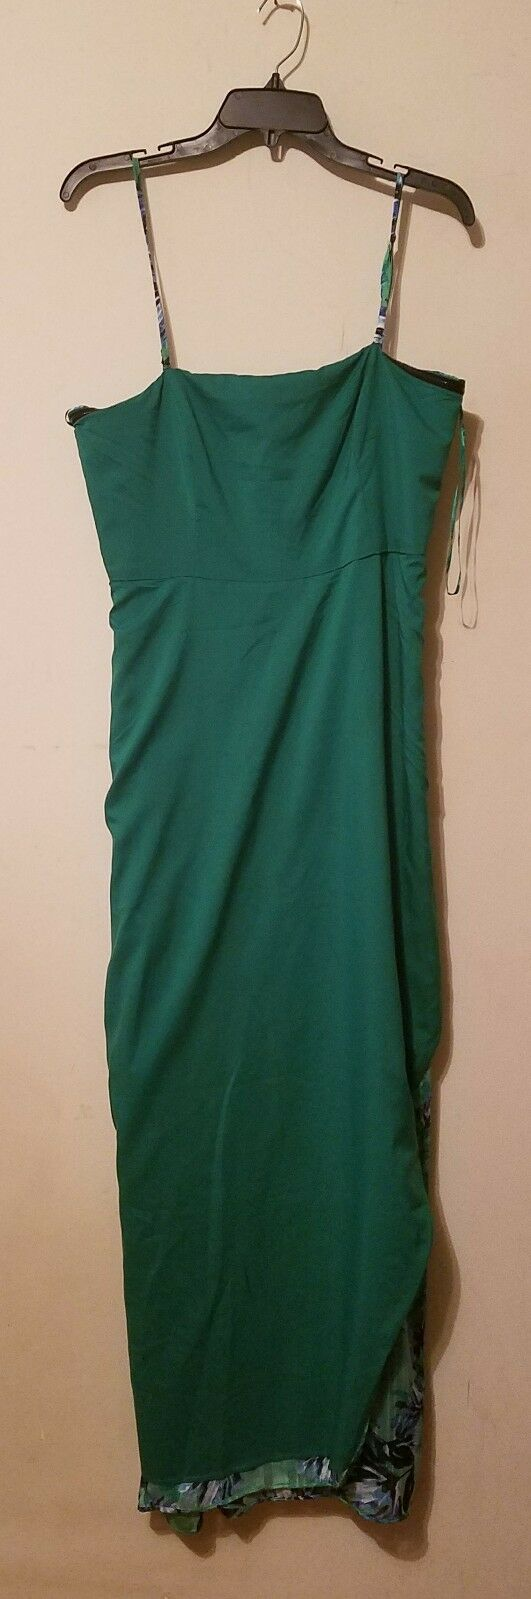 8435dbca6e ... NWT Banana Banana Banana Republic Strapless Palm Print Maxi Dress Green  sz 12 b612f7 ...